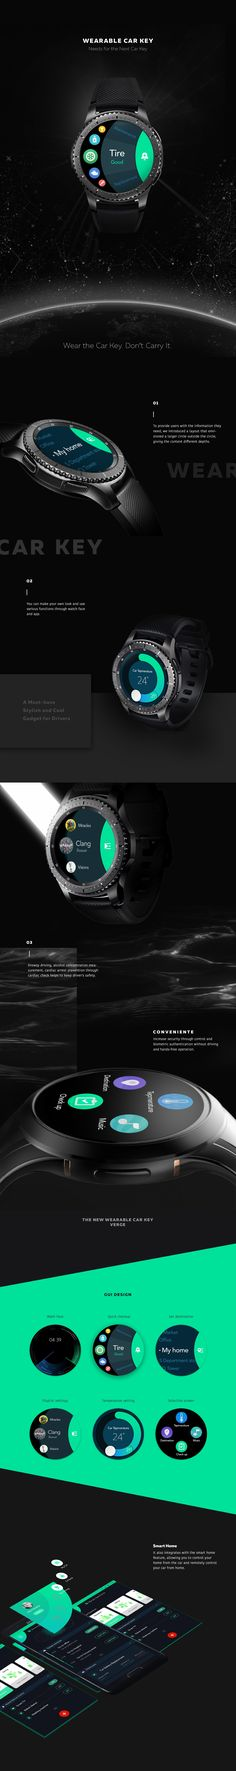 Tips For Choosing Smartwatch Check out this @Behance project: Wearable Car Key UI Design www.behance.net/... - If you want to buy a smartwatch and you do not know which one, you need to review well not only the prices, but also which one is right for you. To do this, we give you useful tips to make the best choice.